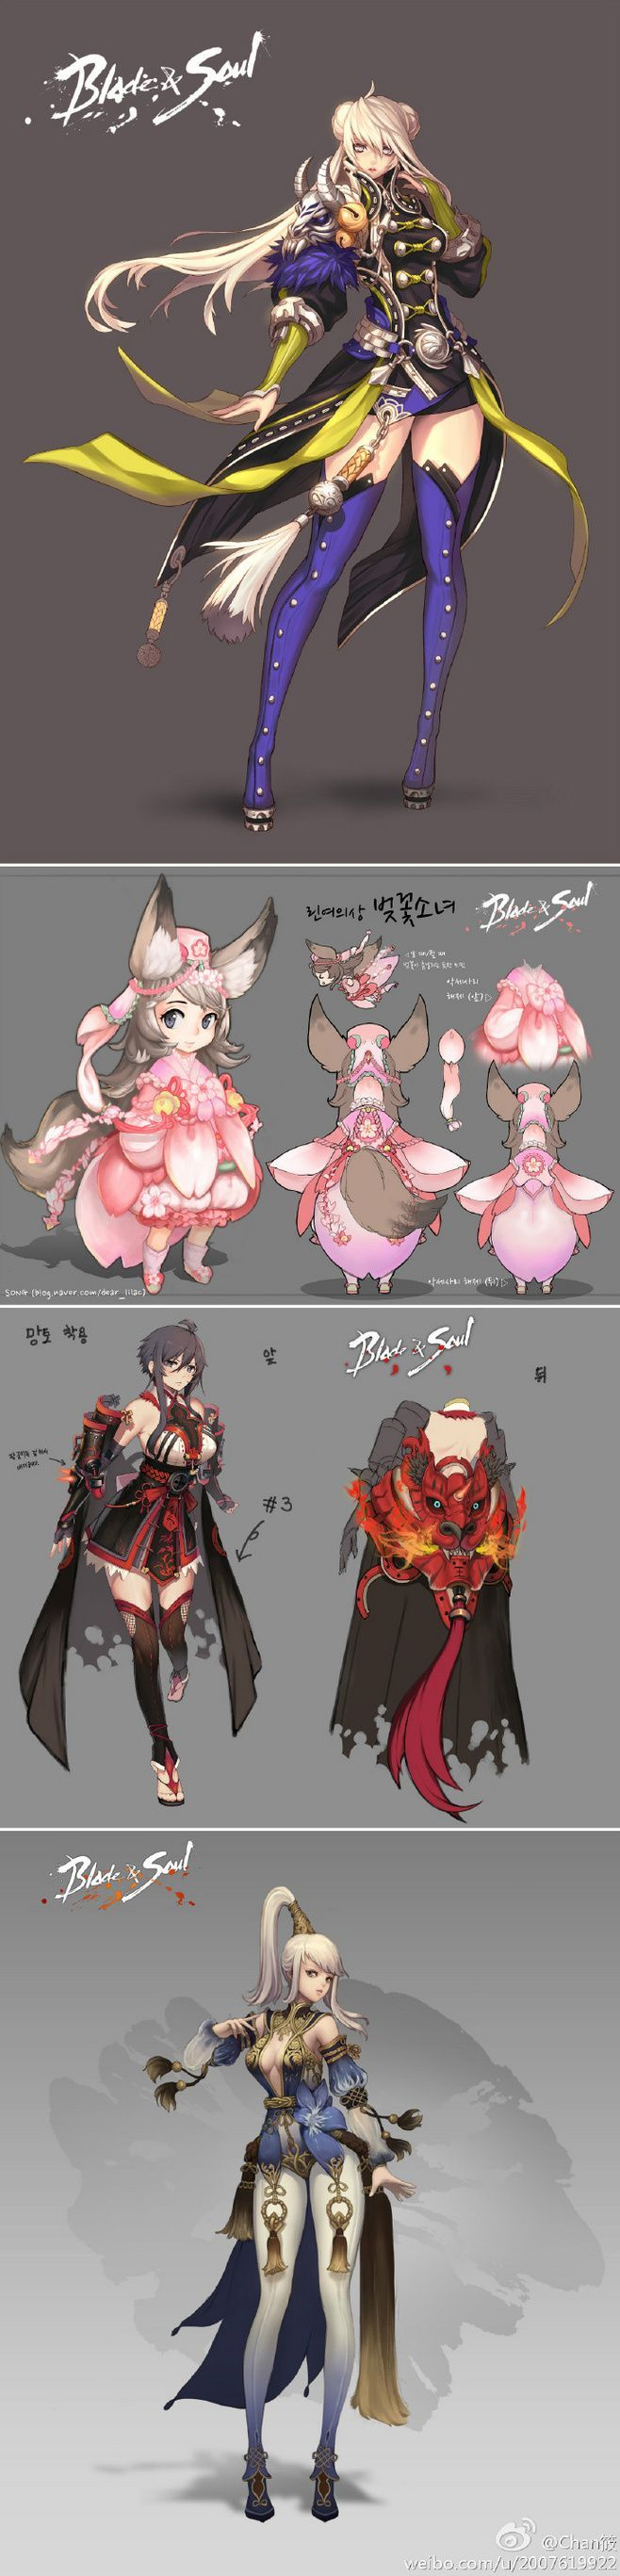 Anime Character 777 : Best images about character concept art on pinterest